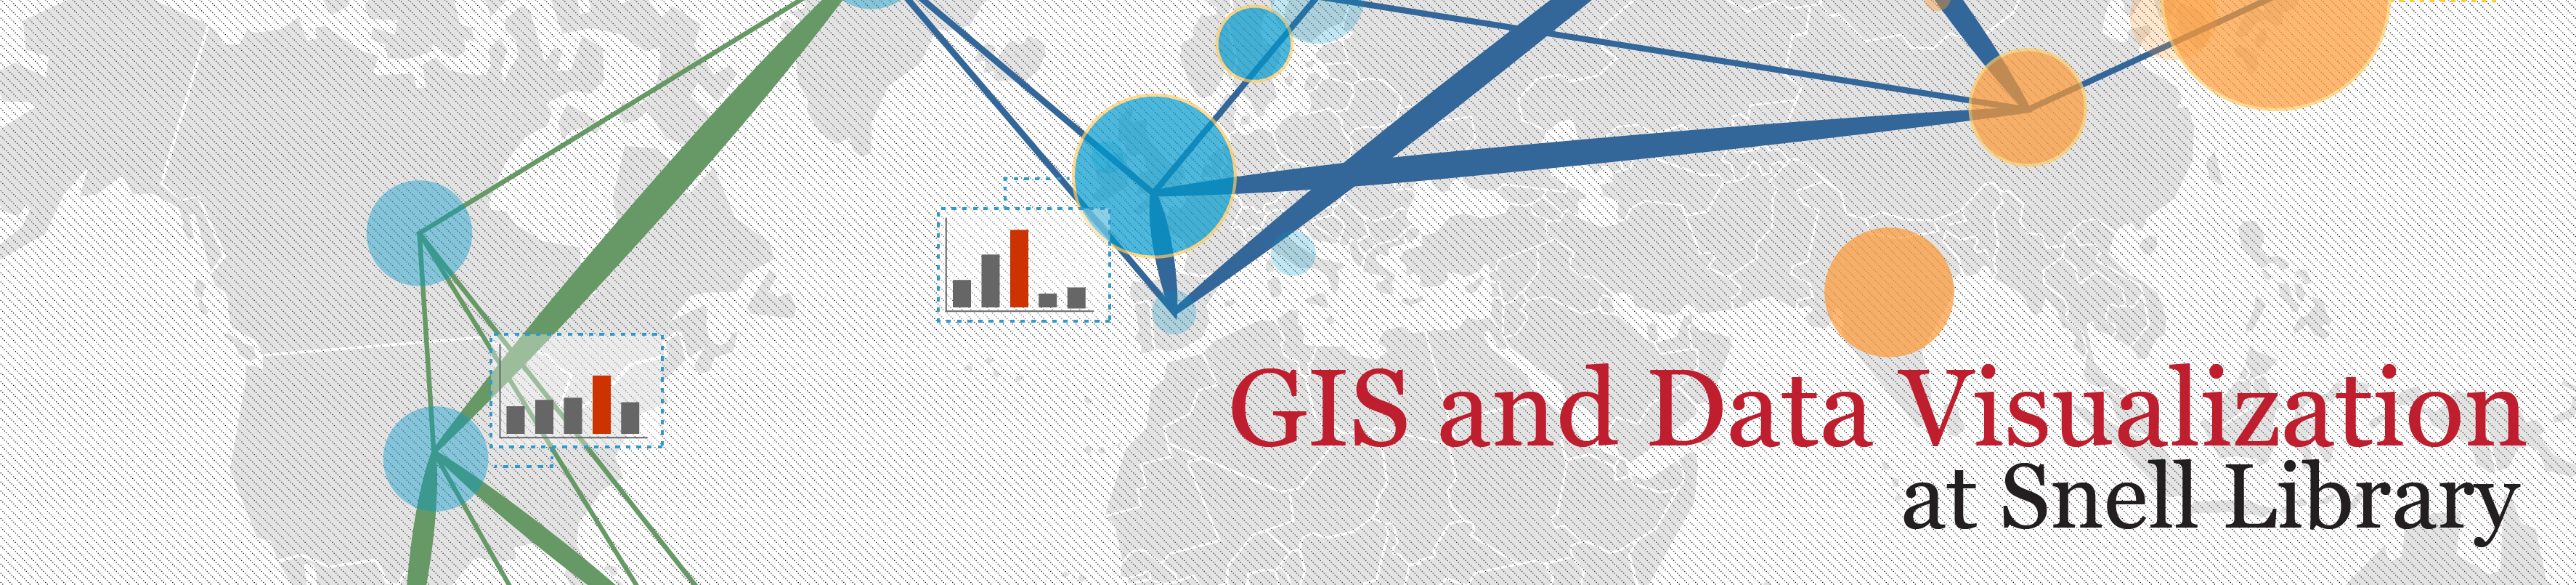 GIS and Data Visualization at Snell Library banner